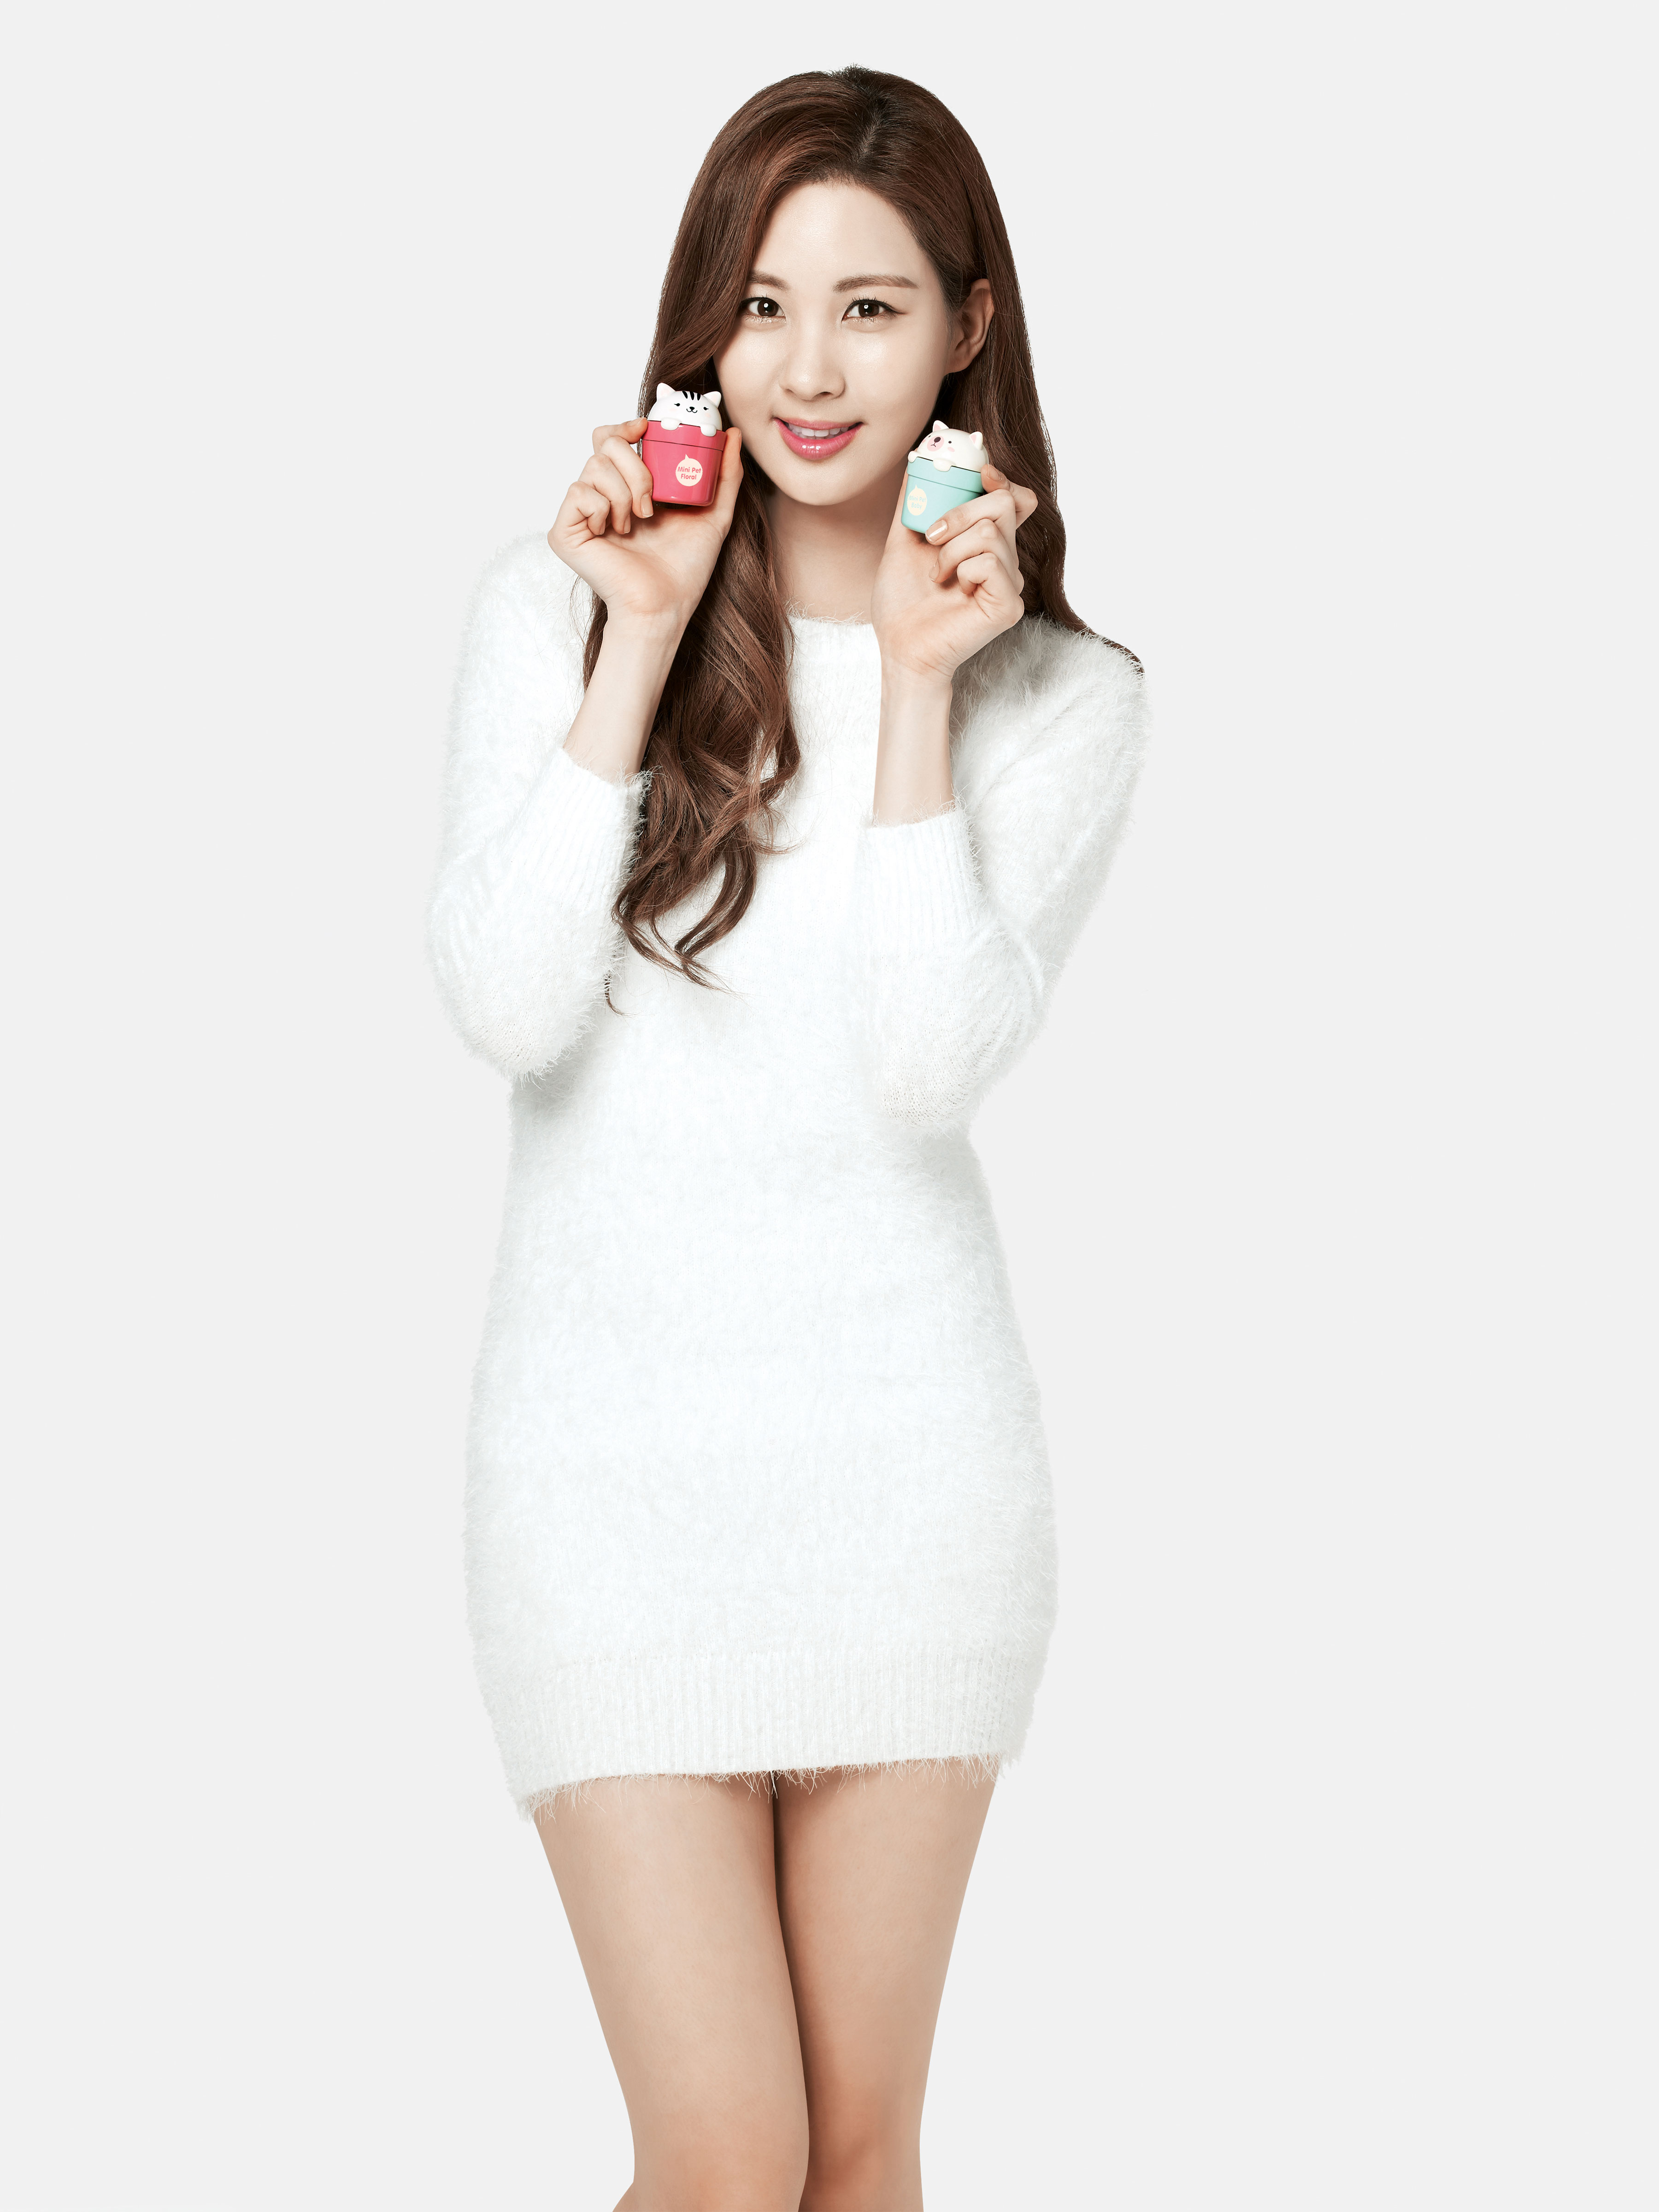 The Face Shop 2012 SNSD Seohyun HD picture